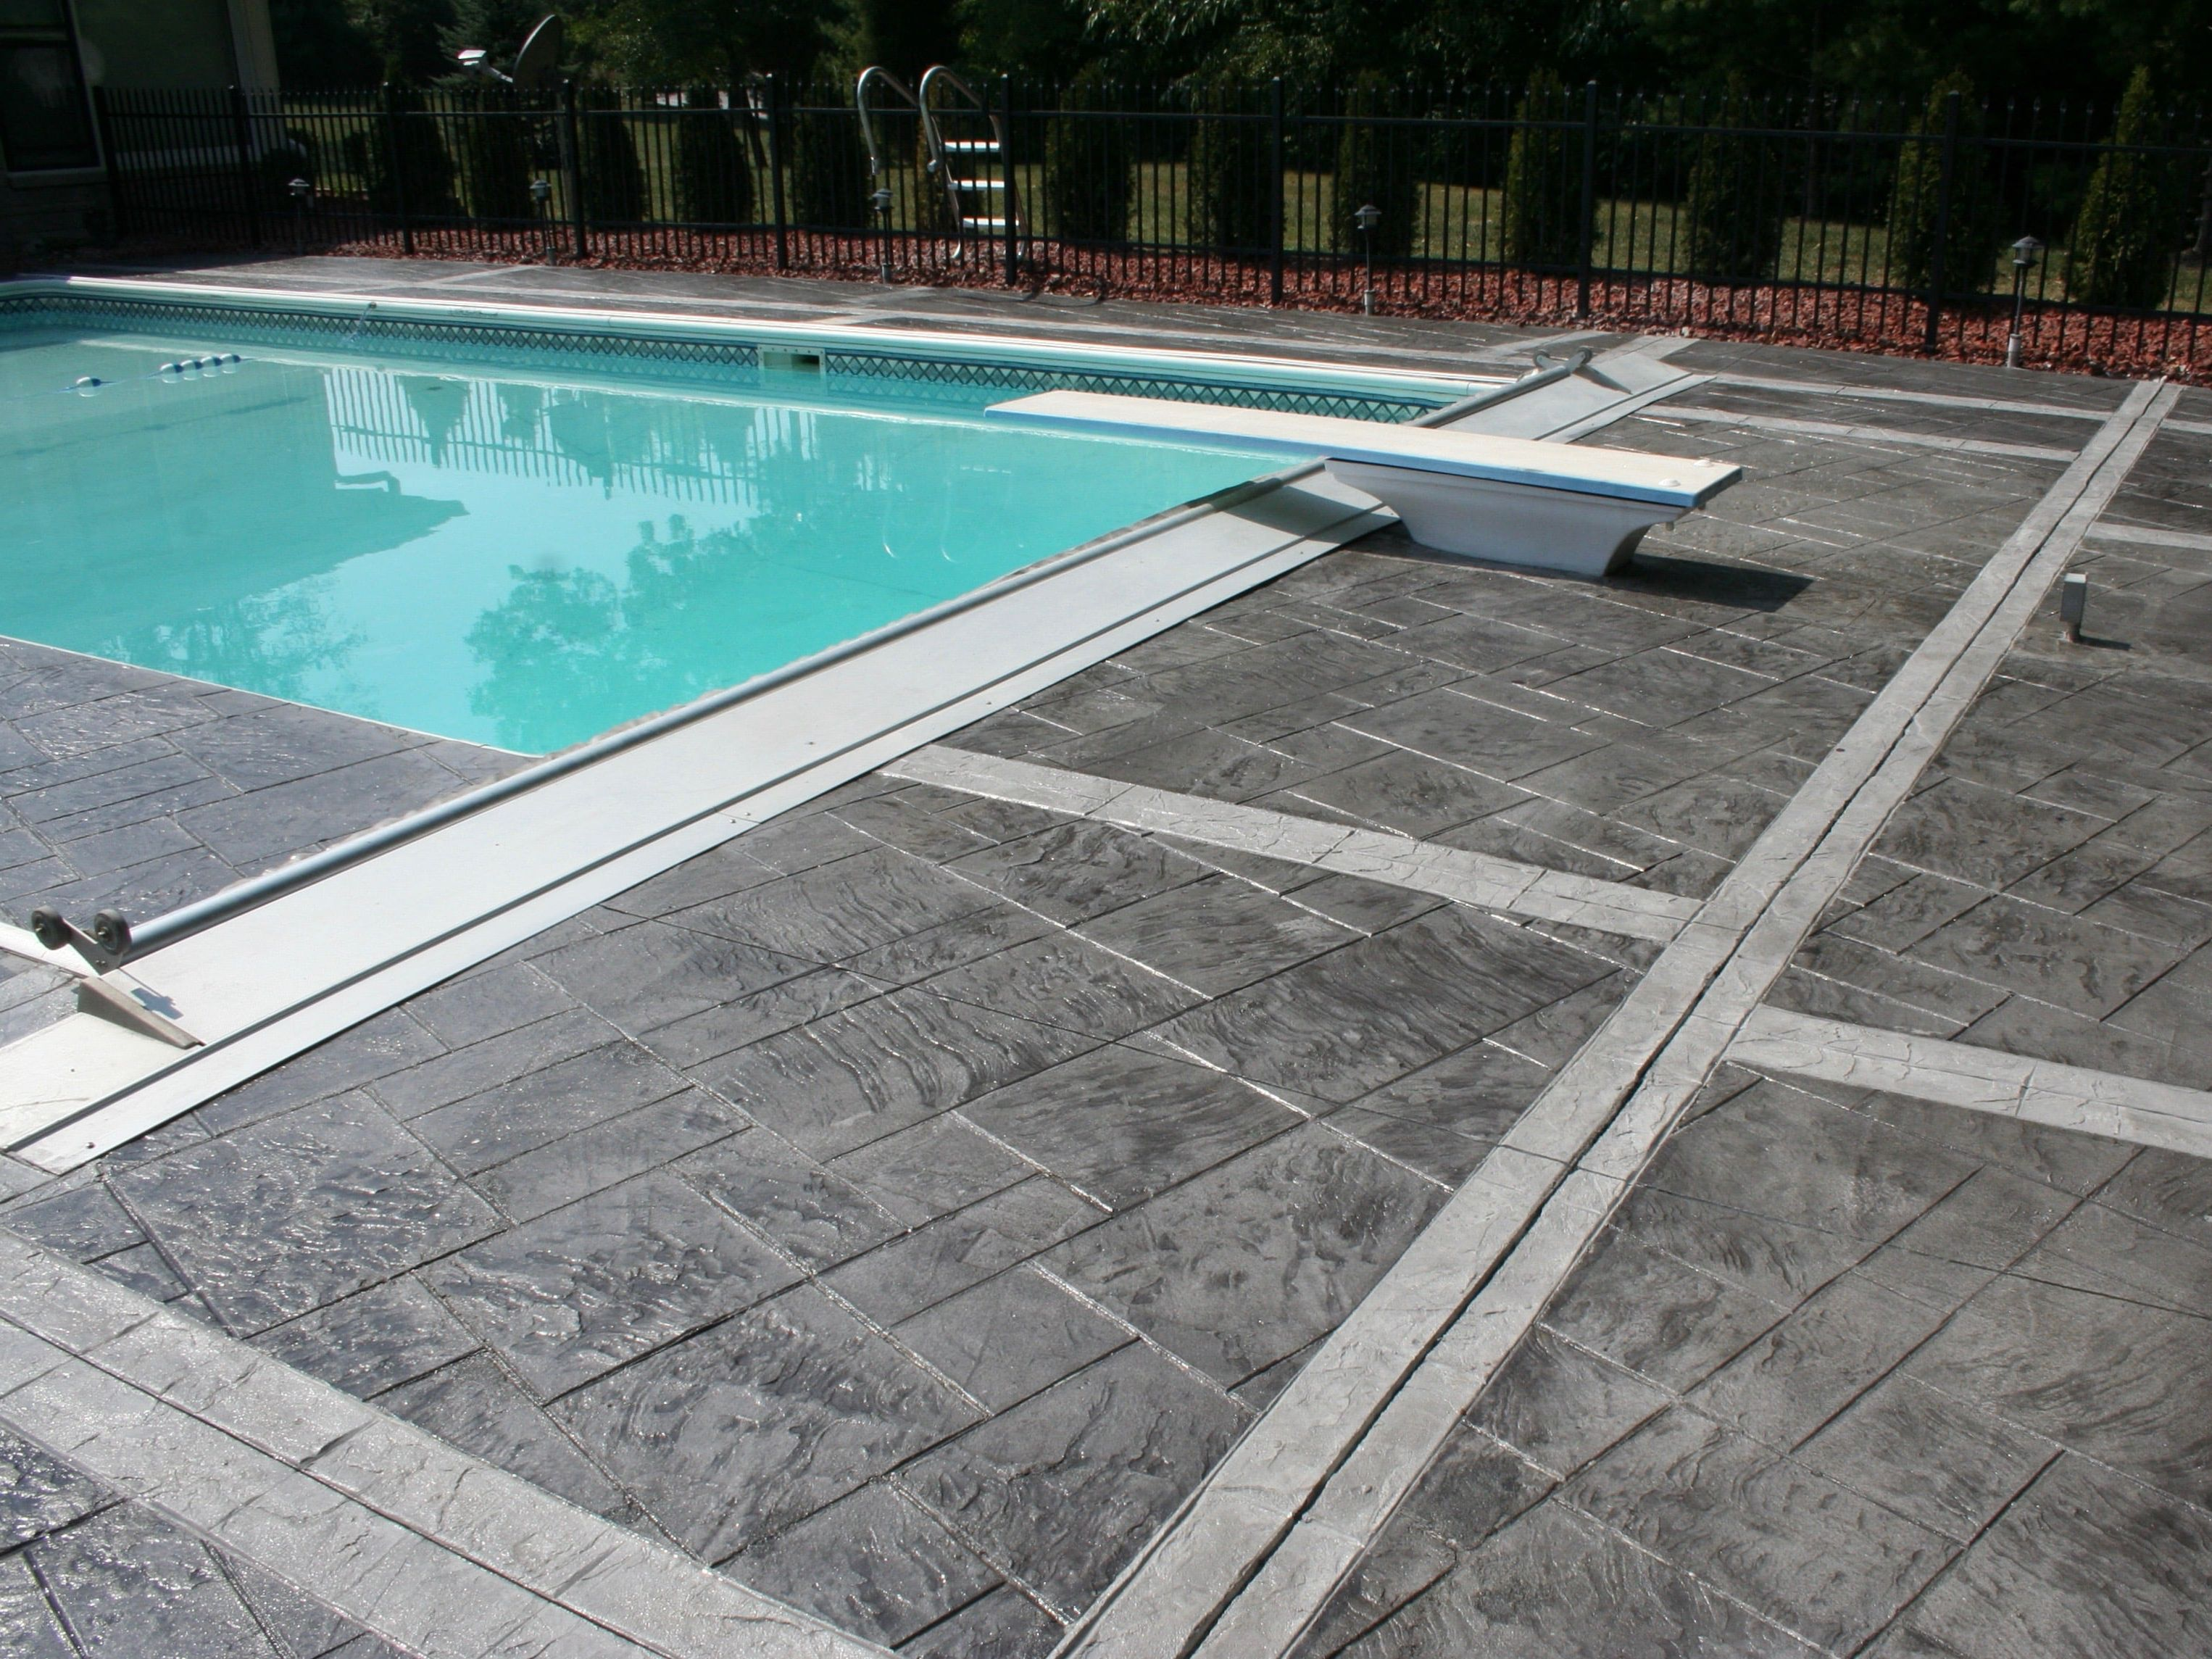 Best Paint For Concrete Pool Deck And Pool Deck Waterpark Surface Coatings Elite Crete Systems Concrete Pool Painting Concrete Pool Deck